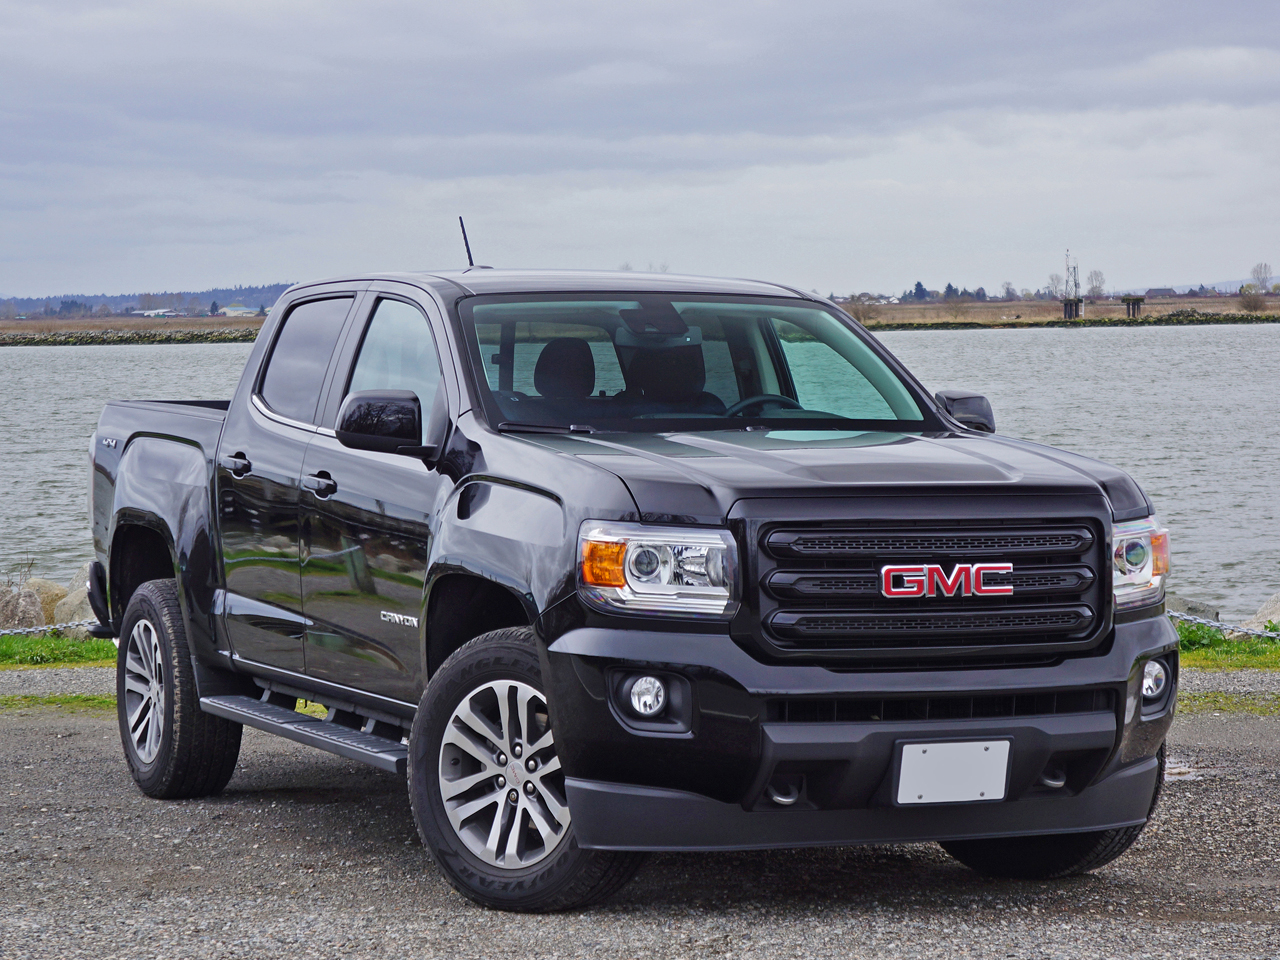 2016 Gmc Canyon Sle Crew Cab 4wd Nightfall Edition Road